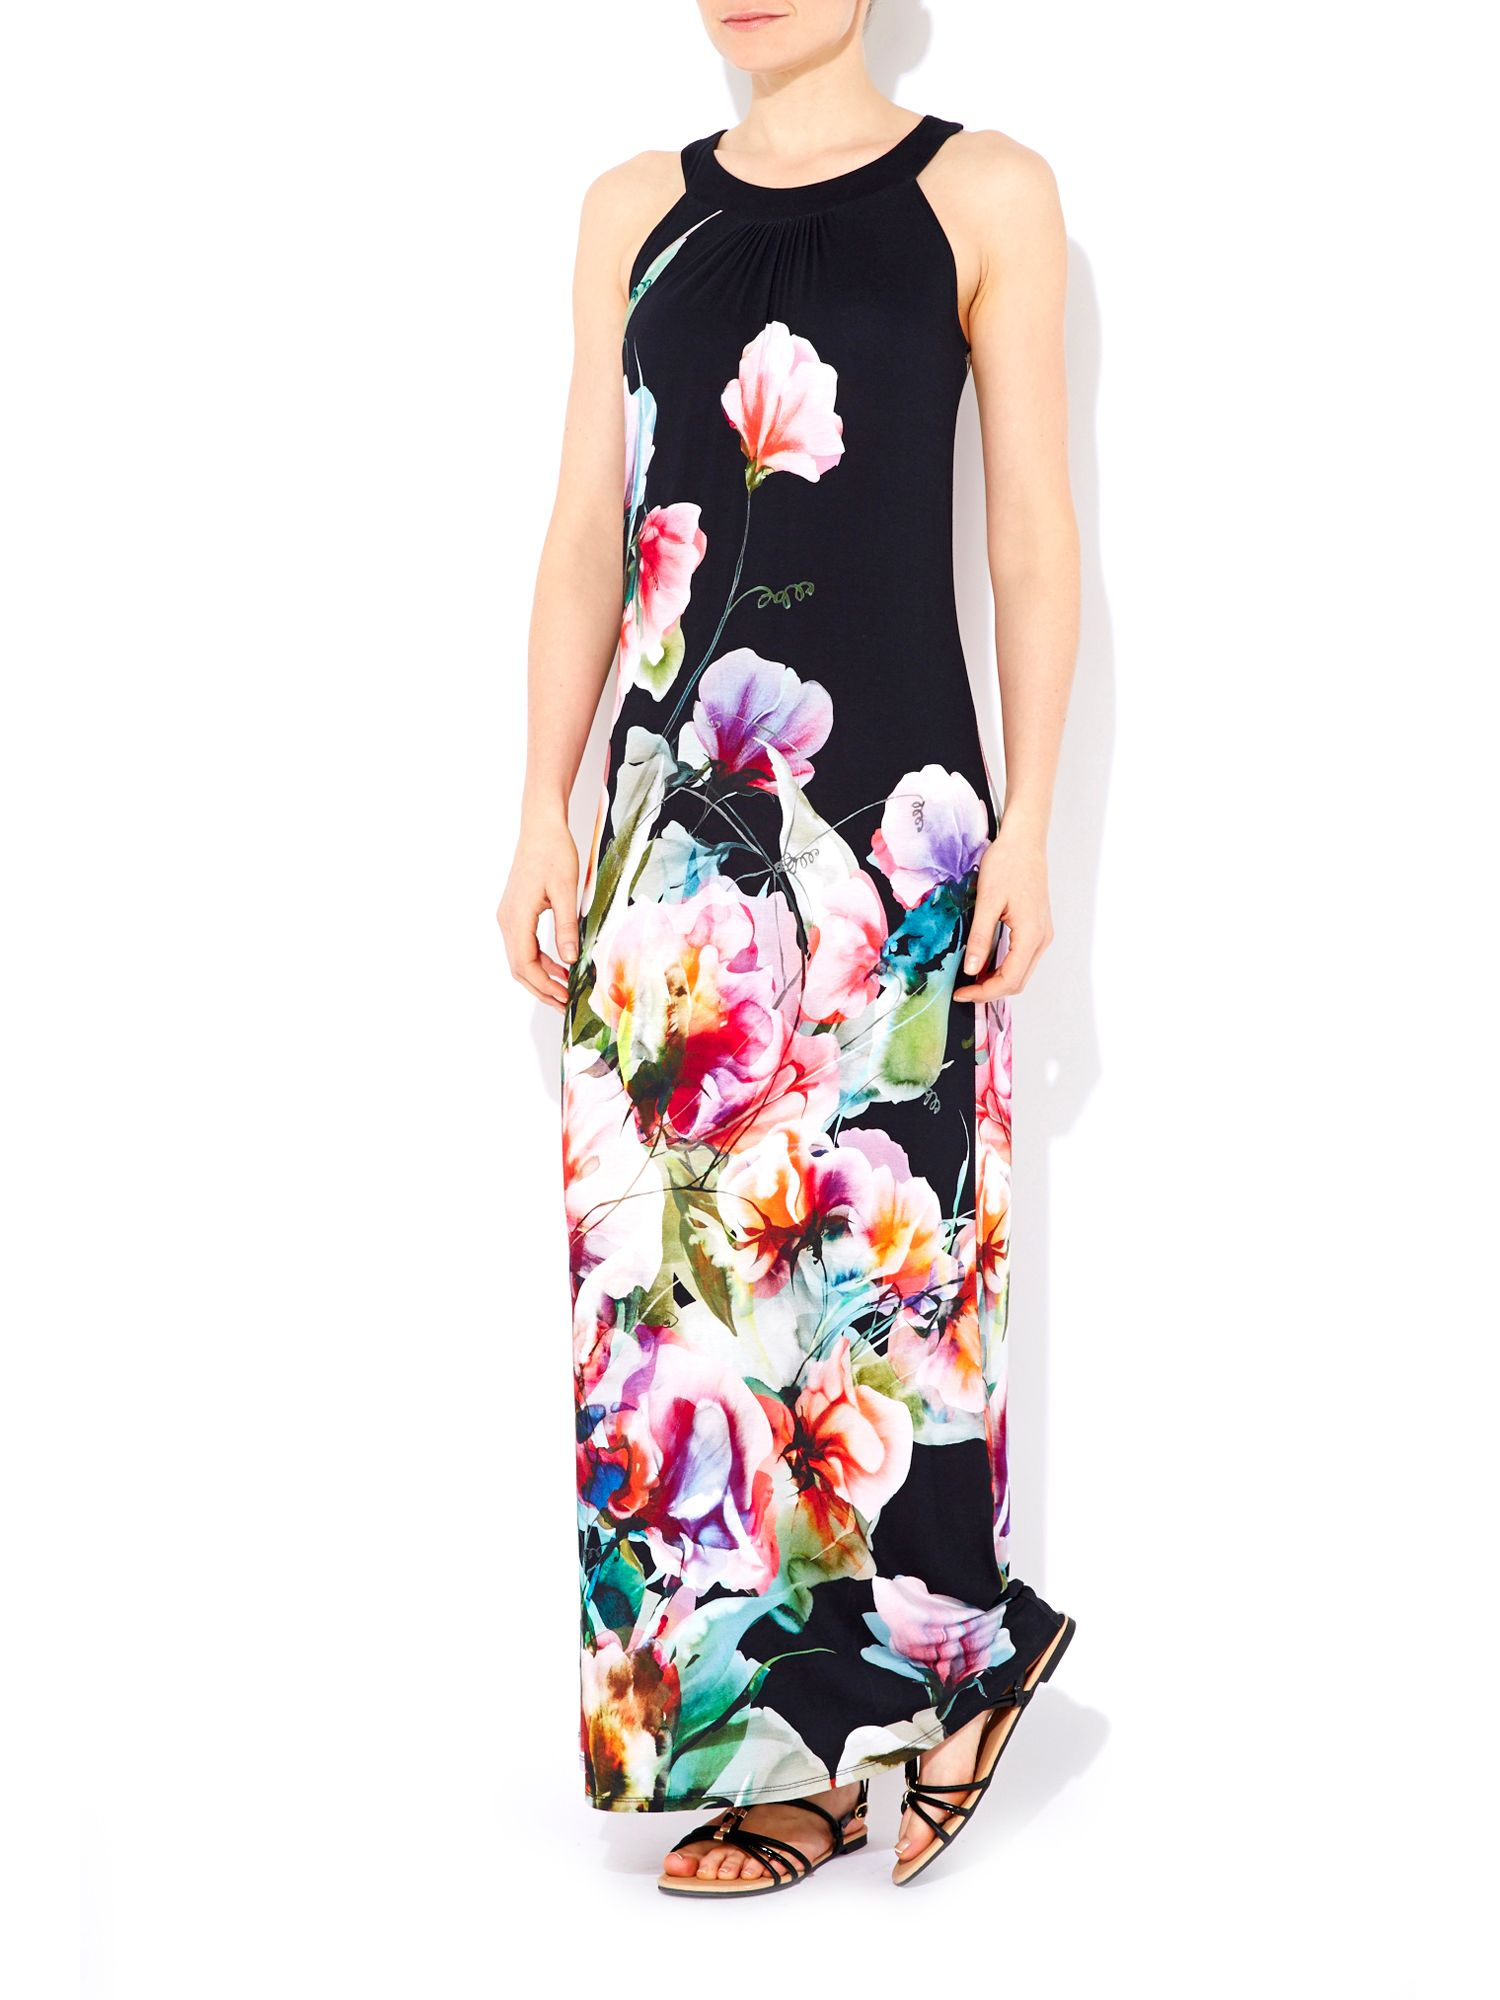 Floral Dresses amp Floral Gowns  Womens Dresses